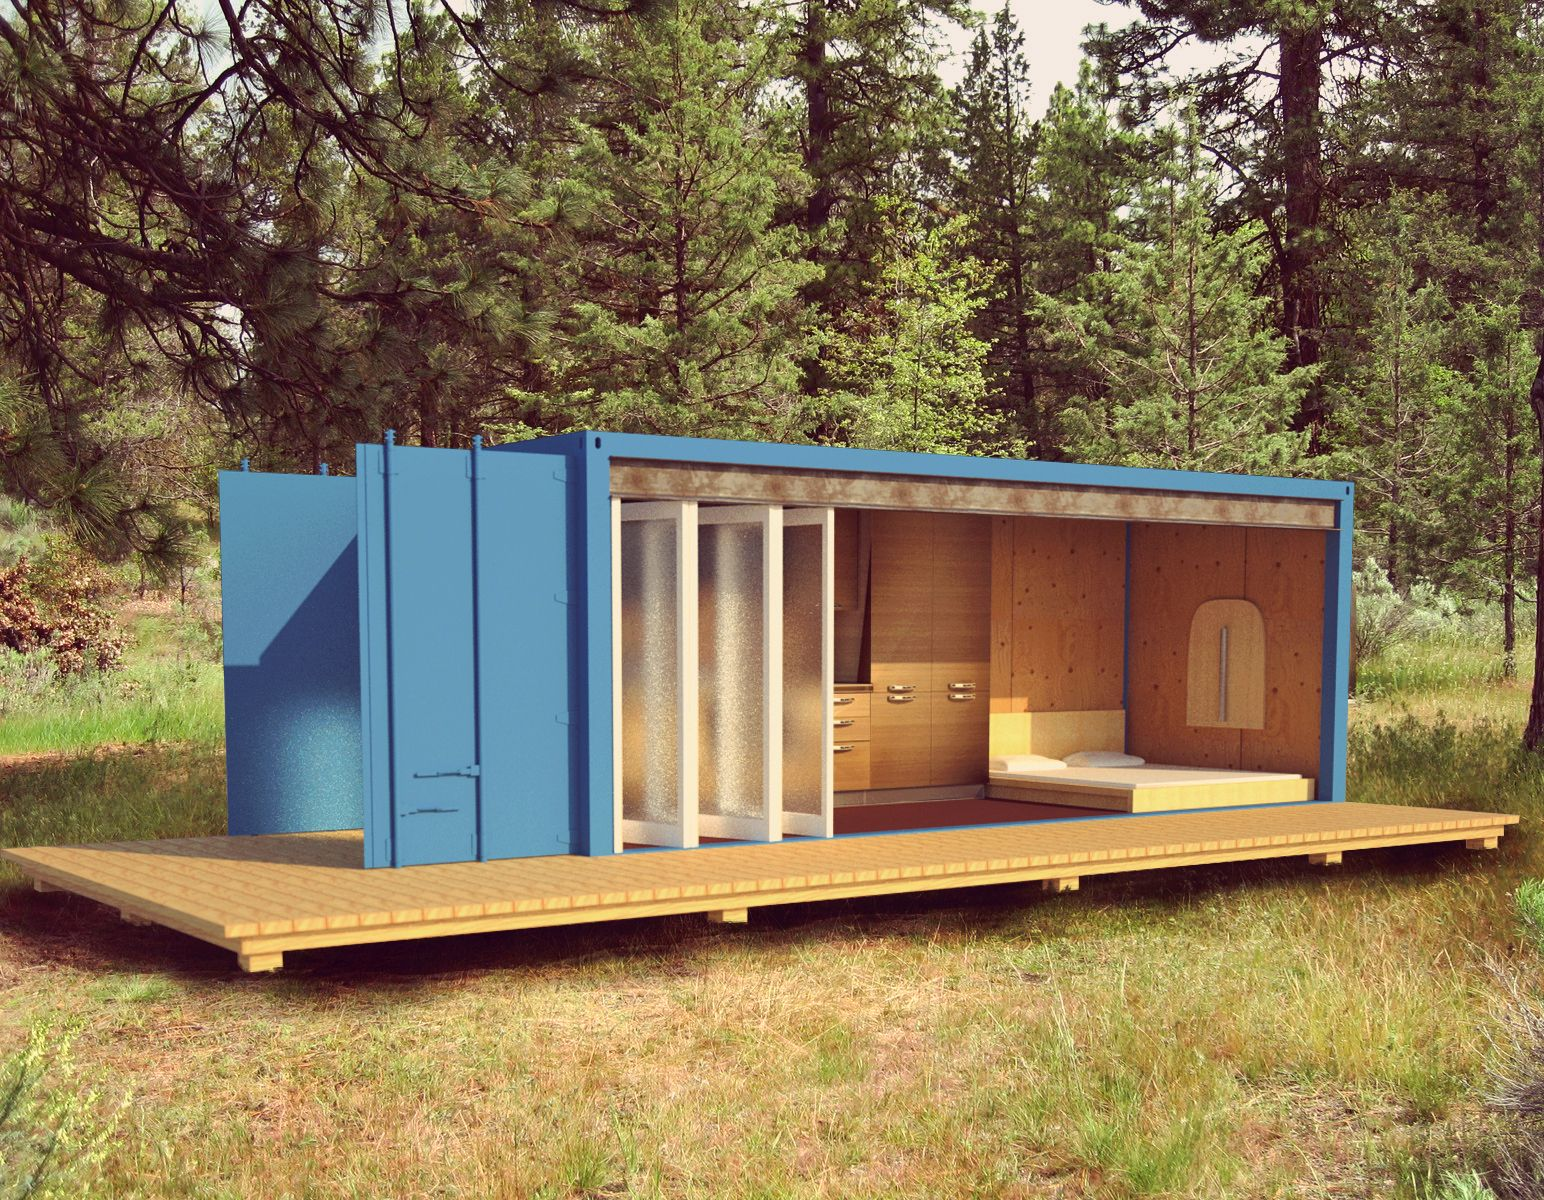 Where To Buy Shipping Containers For A Container House Container House Container House Design Shipping Container Cabin